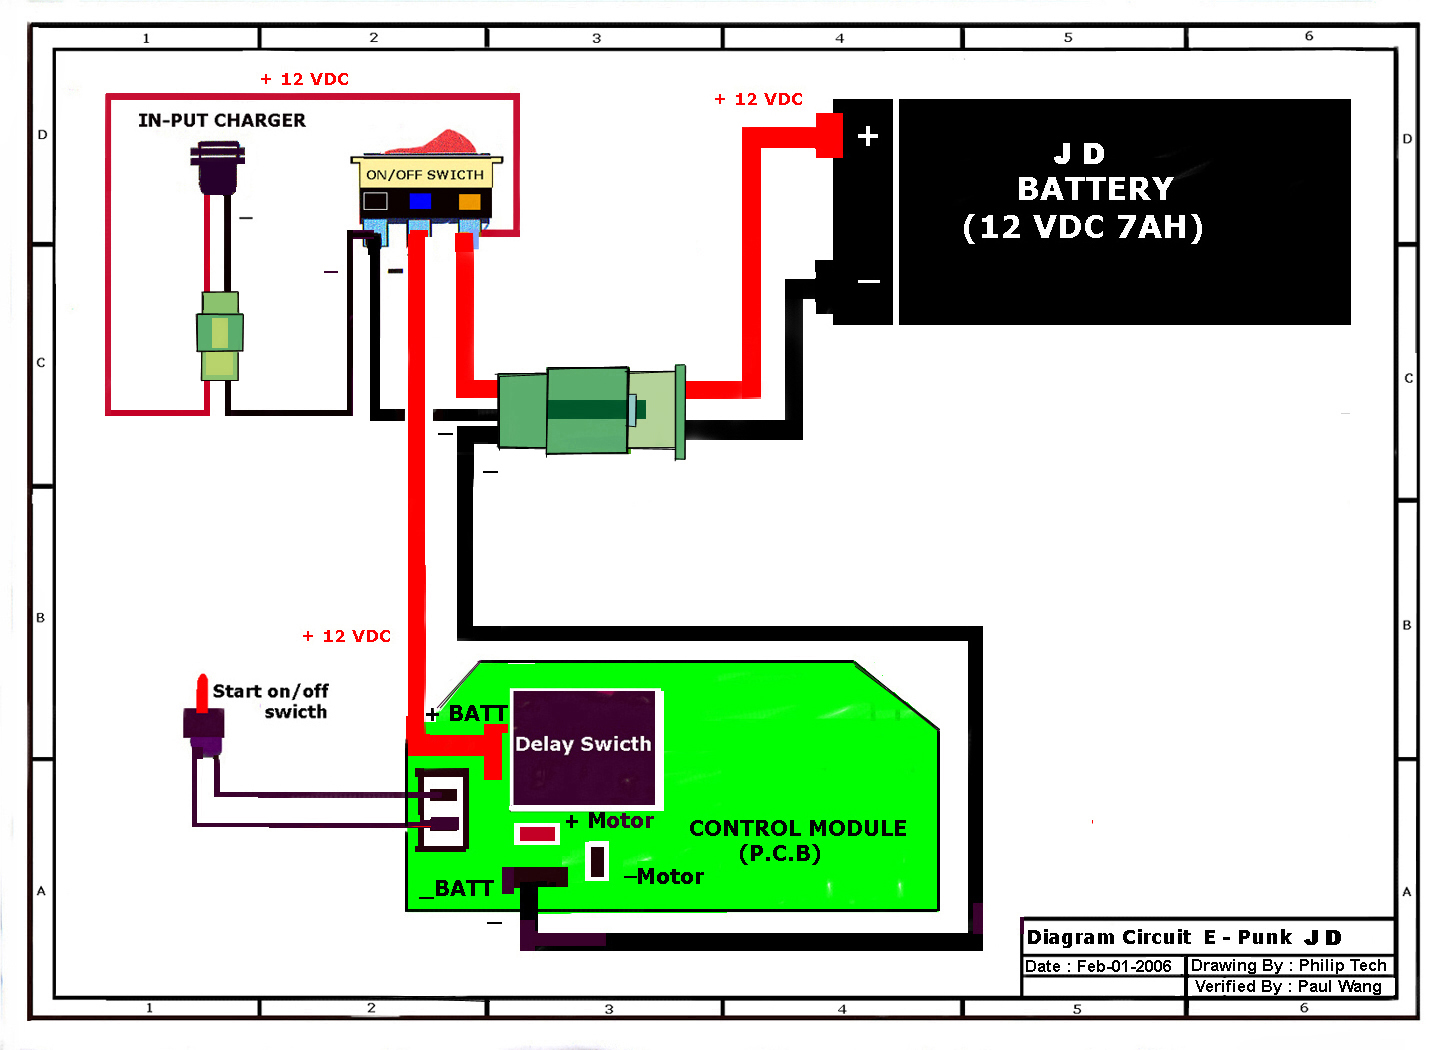 razor epunk wiring diagram jd razor go kart wiring diagram razor go kart parts \u2022 free wiring  at pacquiaovsvargaslive.co